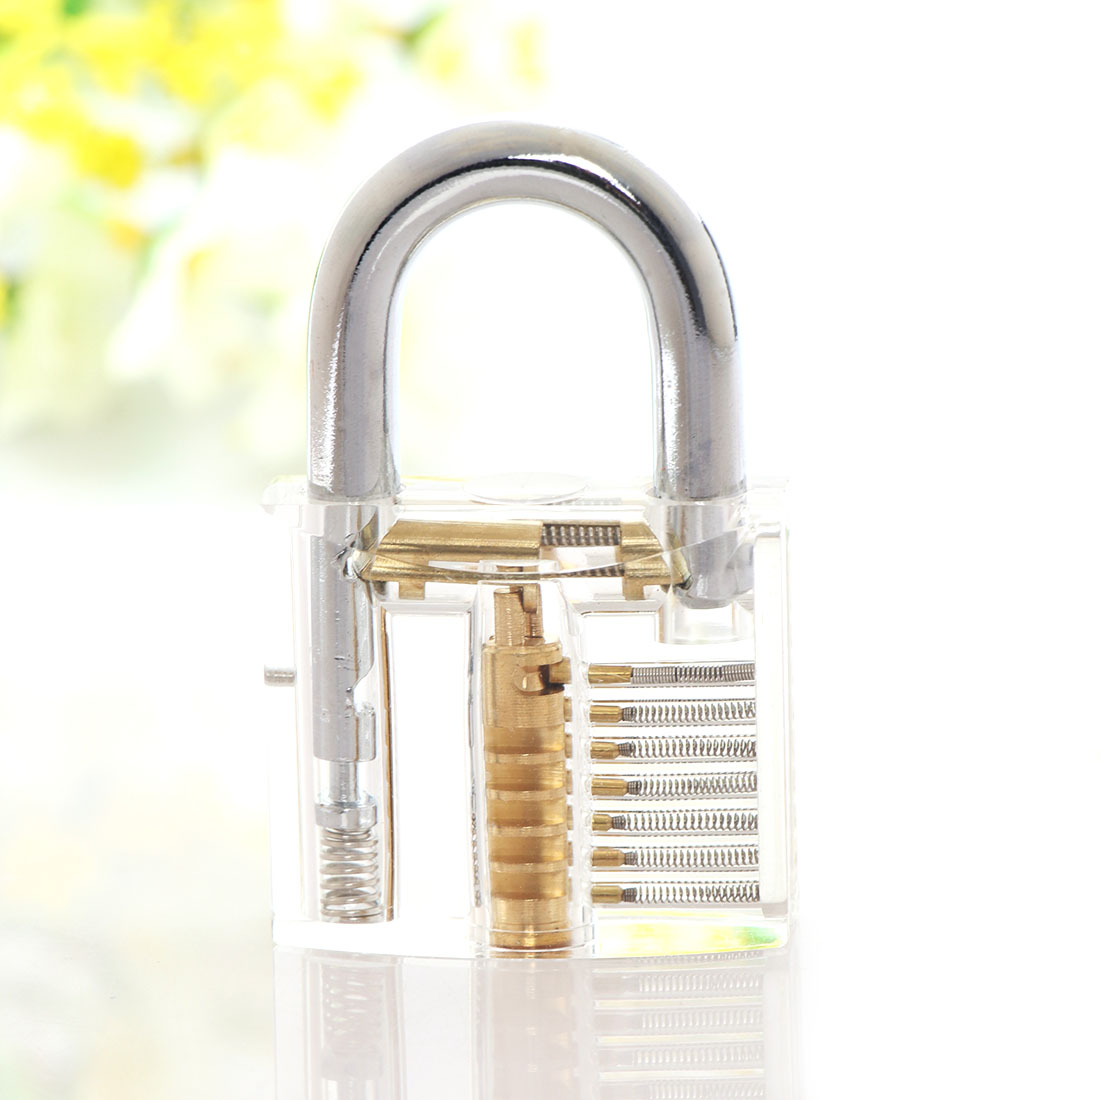 Congratulations on the Day of Locksmith Russia 46